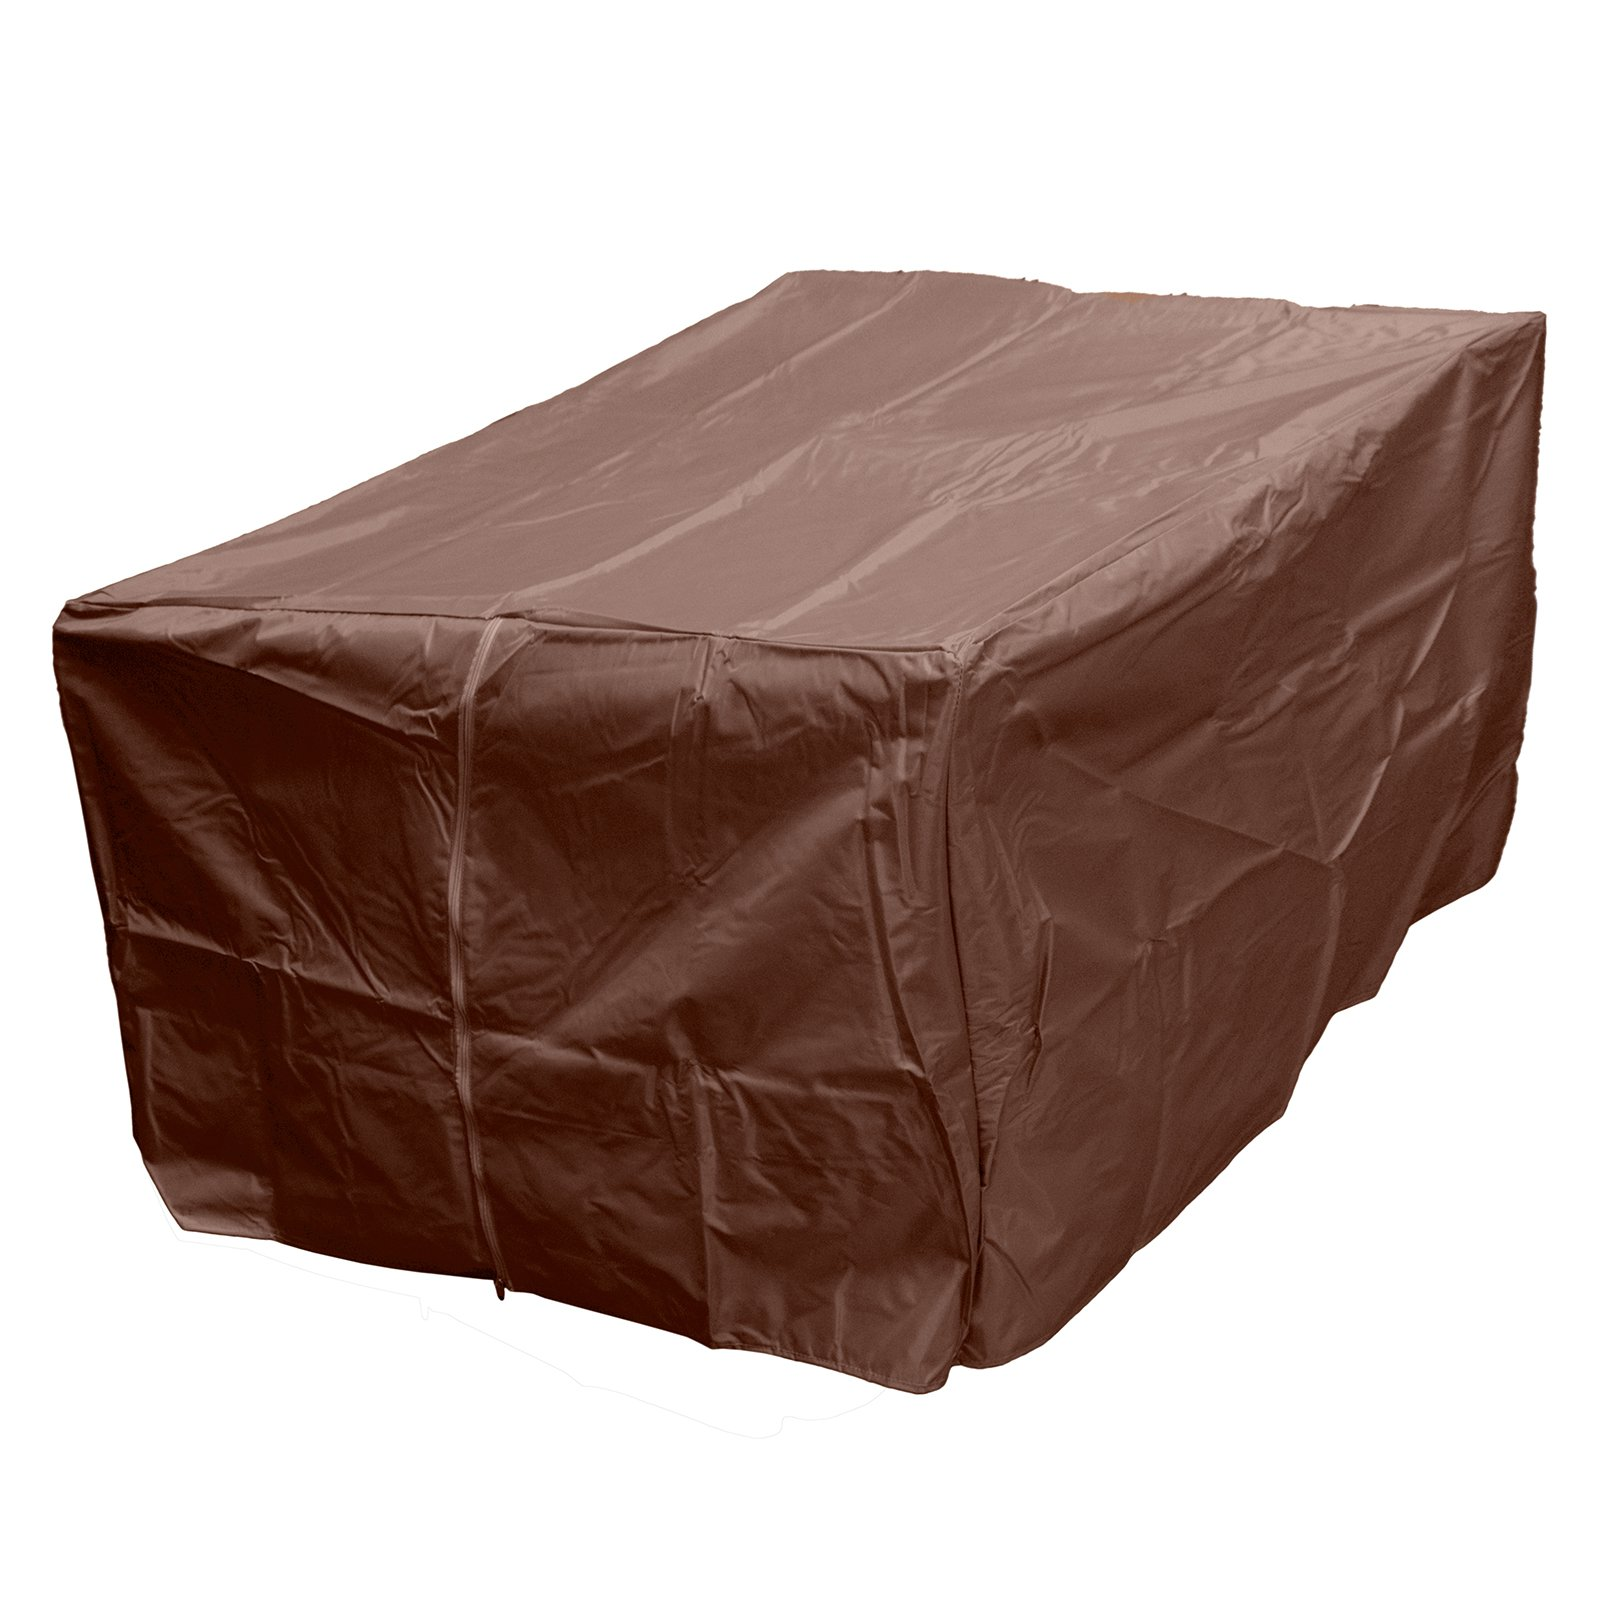 Hiland Heavy-Duty Rectangular Firepit Cover, Mocha